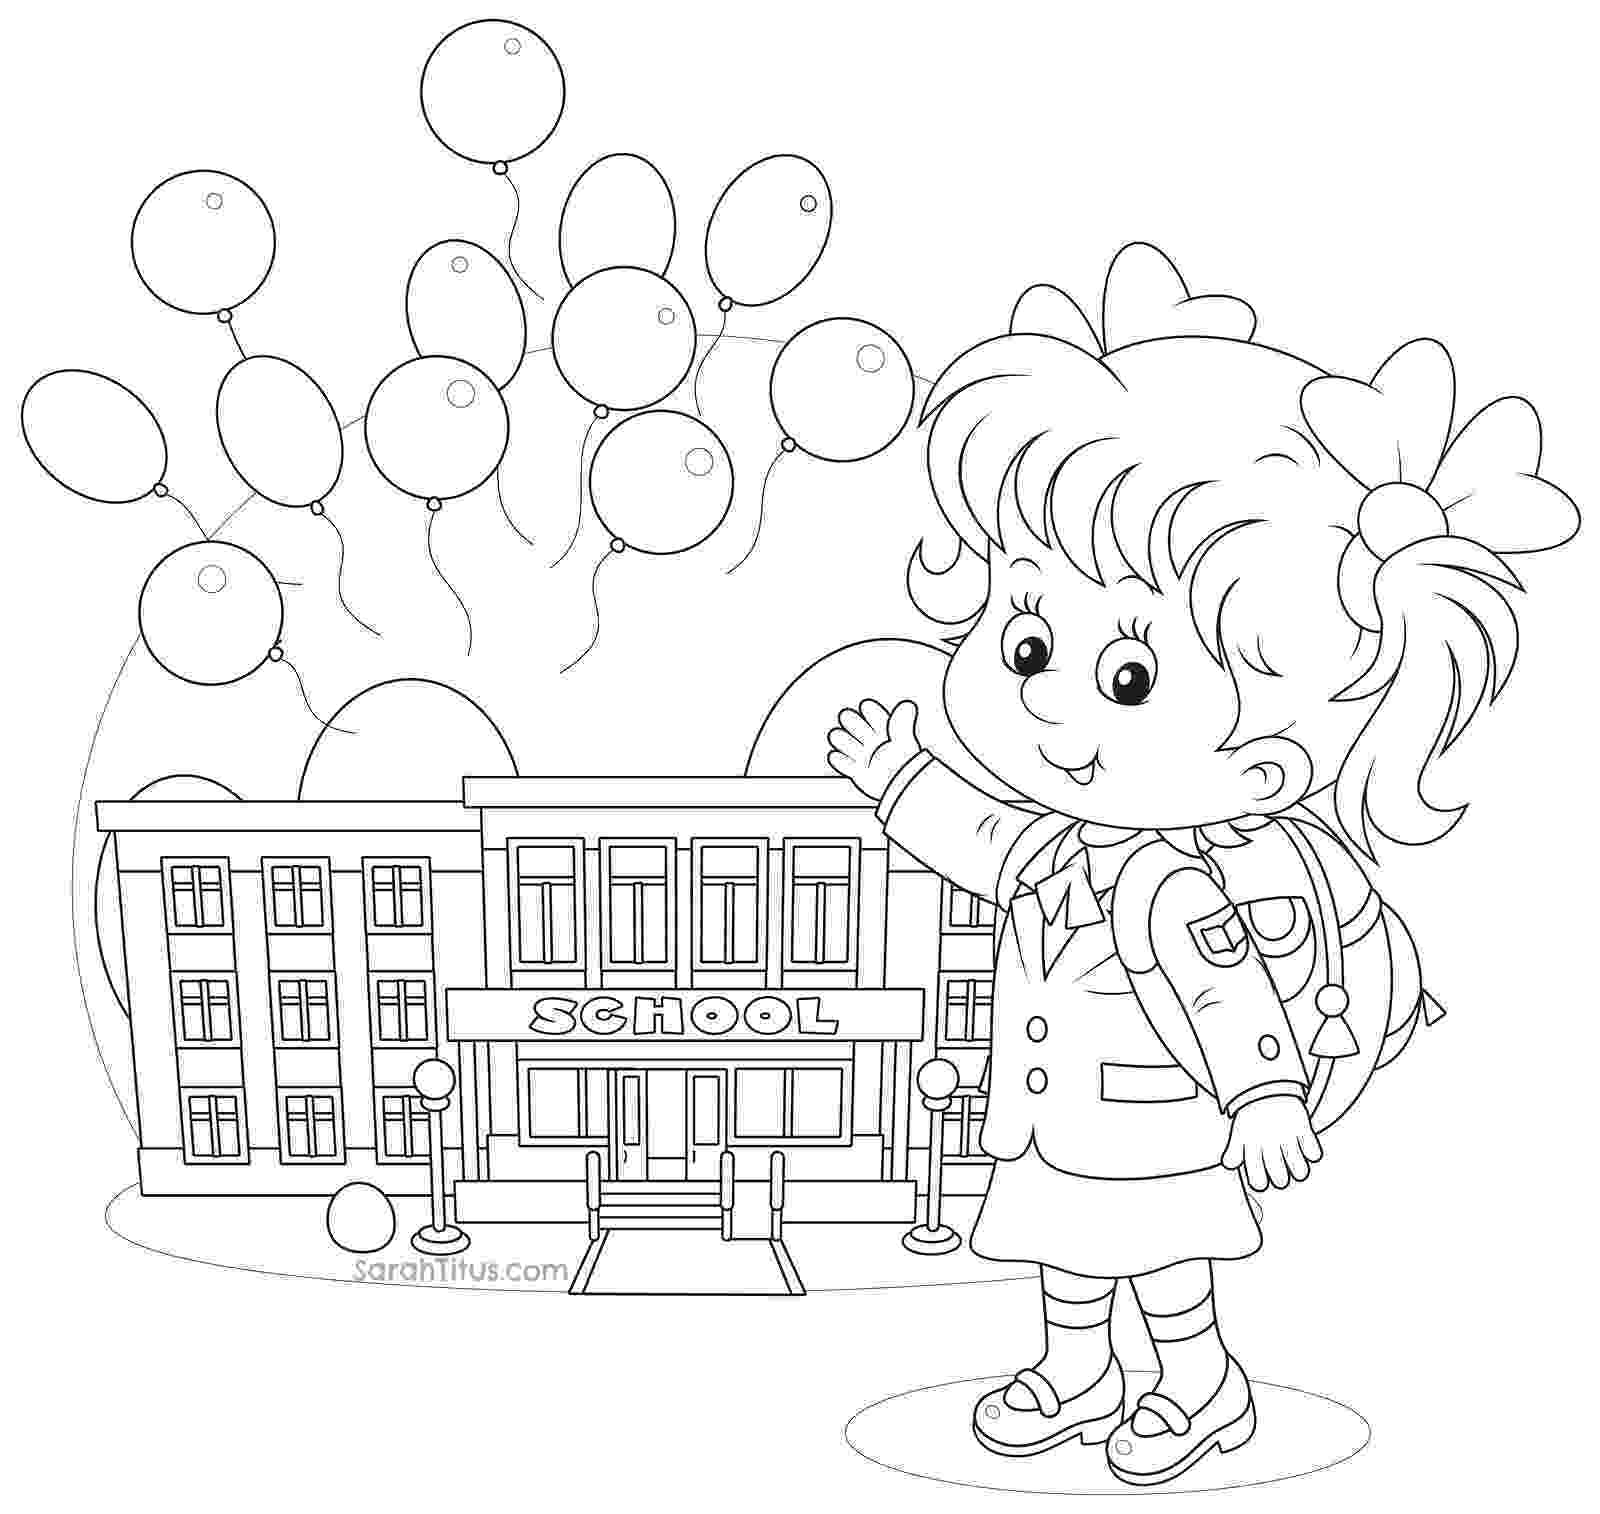 colouring pages for play school 20 free printable school coloring pages school pages for colouring play